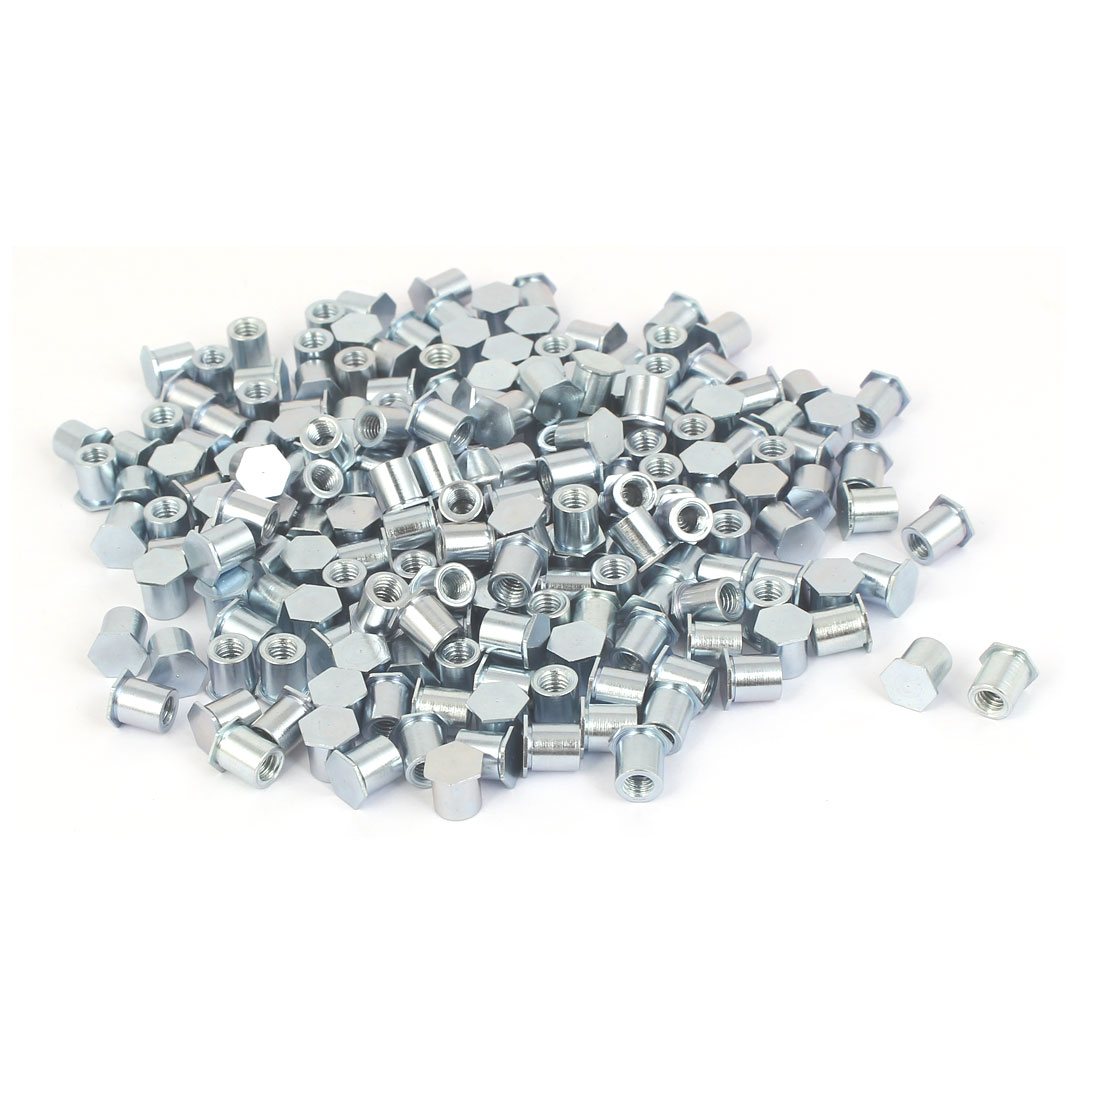 M4 x 7mm Full Thread Hexagon Head Carbon Steel Blind Self Clinching Standoffs 200 Pcs